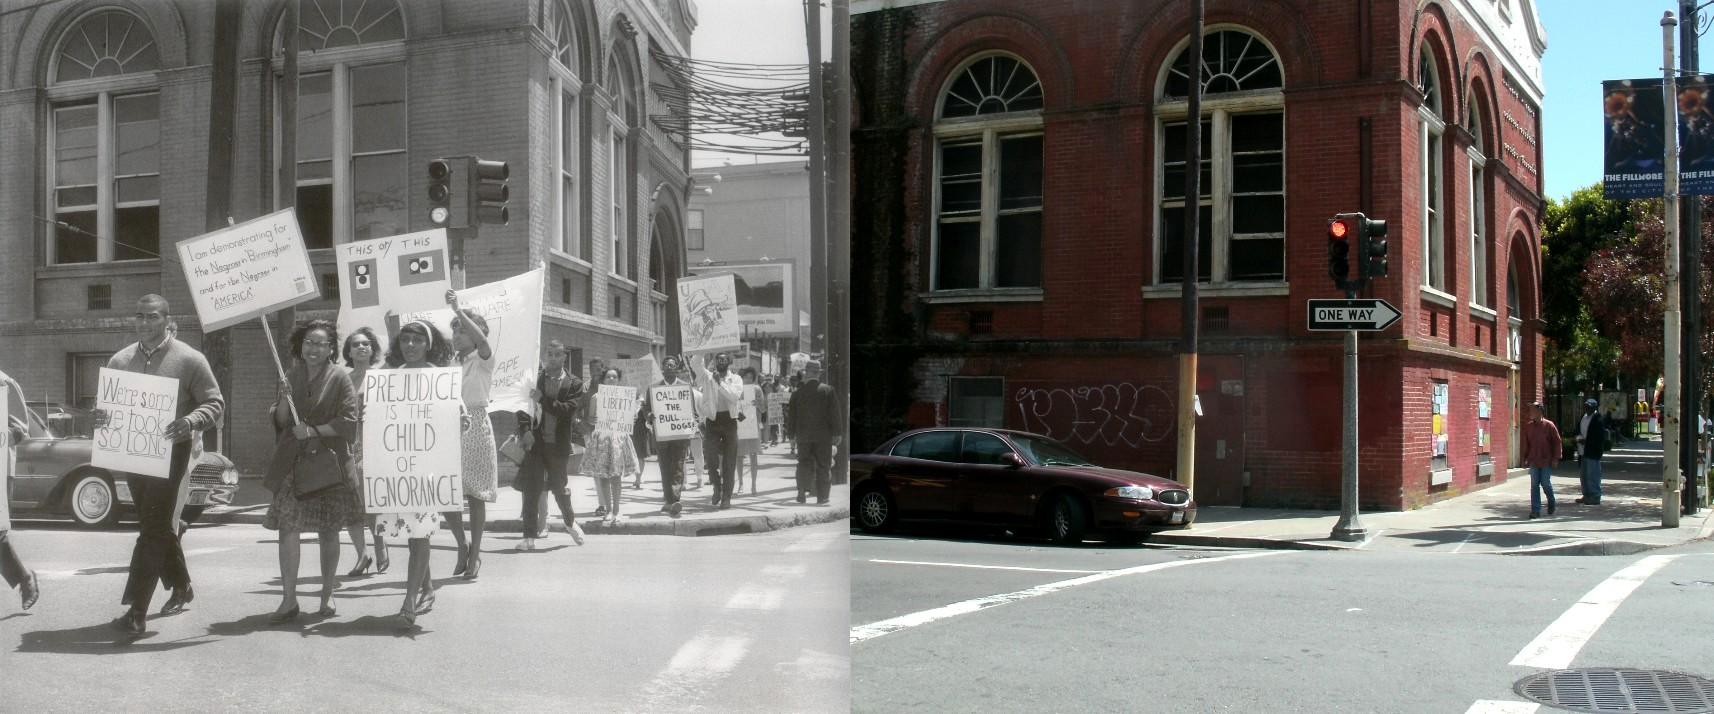 Fillmore and Turk in the 1960 s     San Francisco Film Locations Then     A civil rights march at Fillmore and Turk in 1963   Thumbnail image